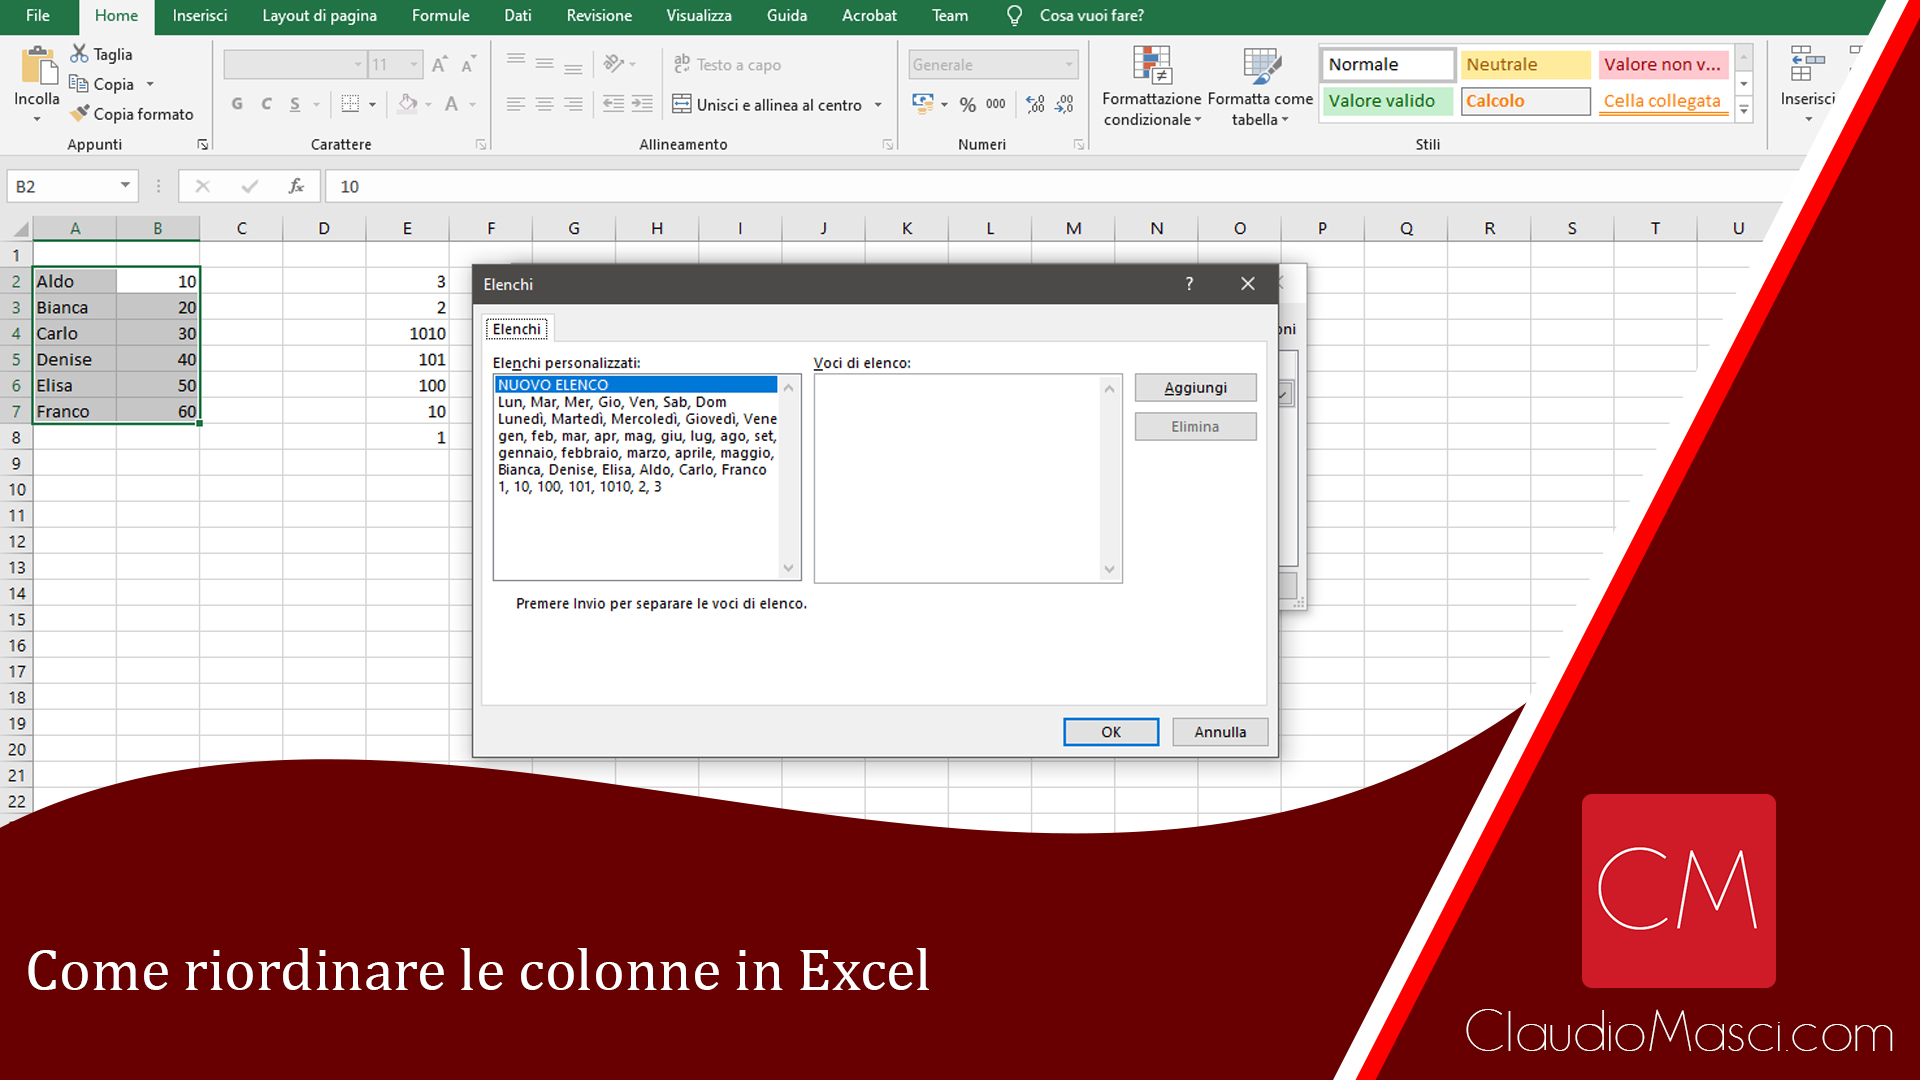 Come riordinare le colonne in Excel